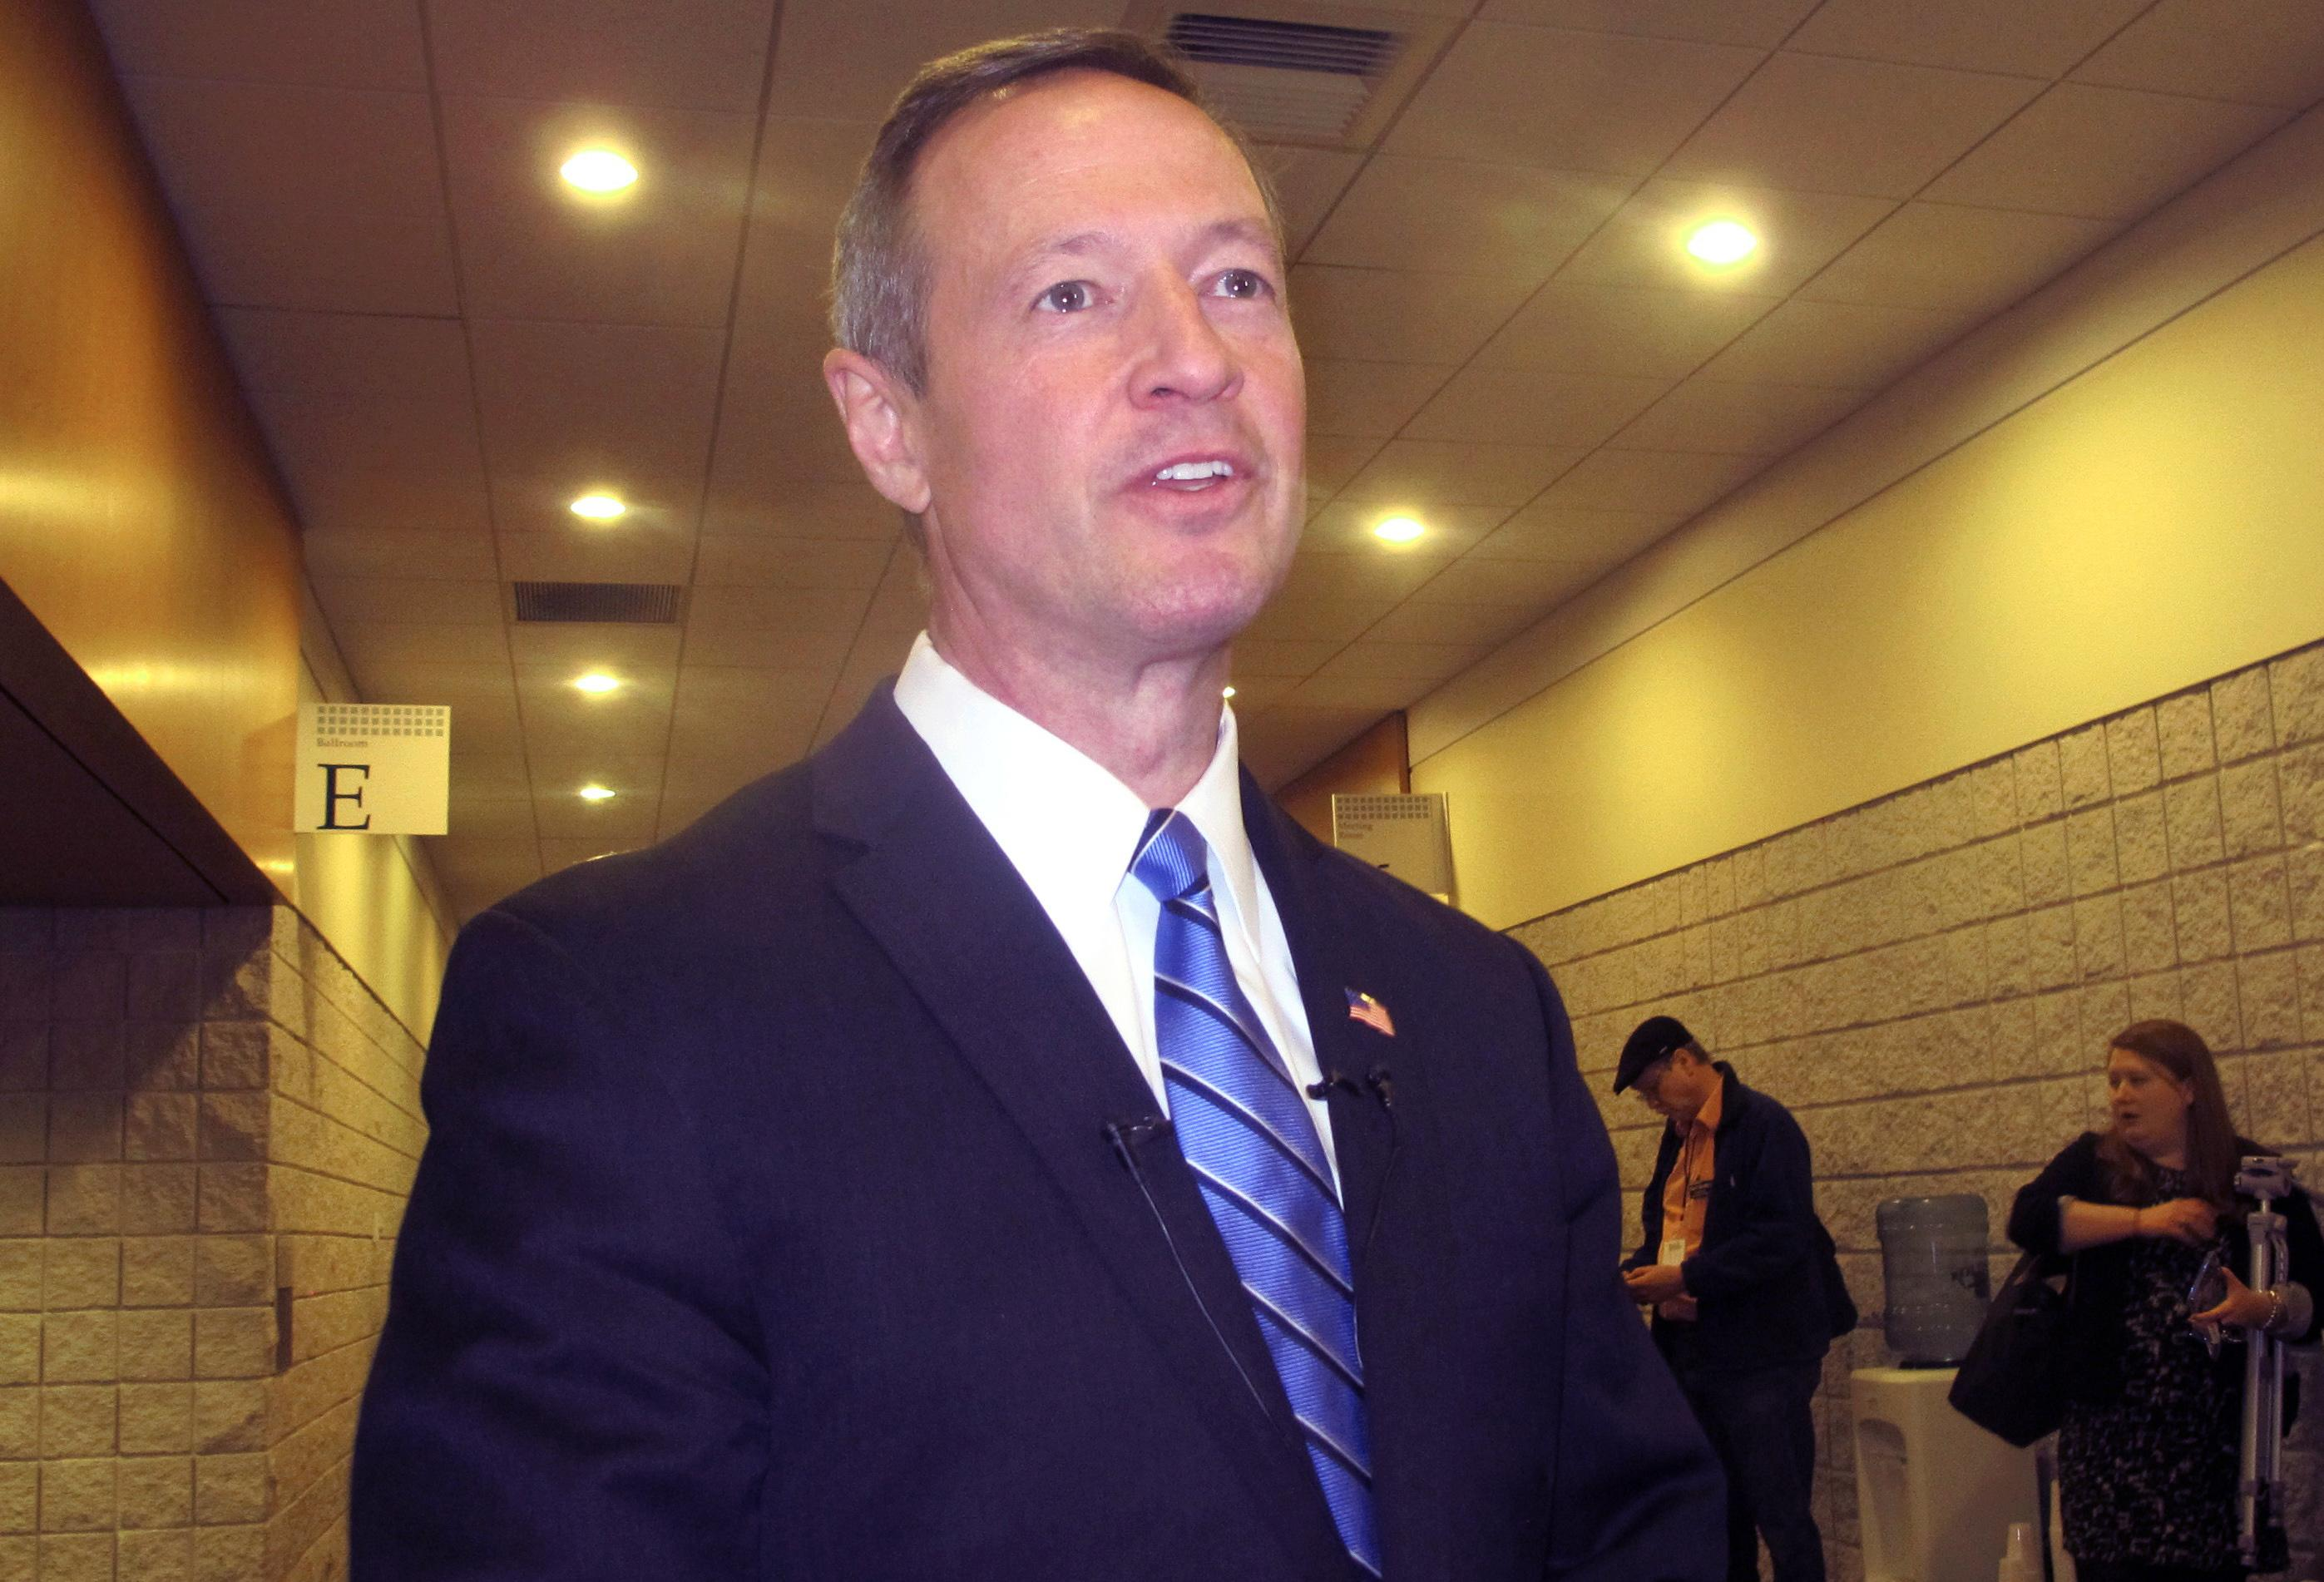 O'Malley won't seek Mikulski seat, keeps White House option